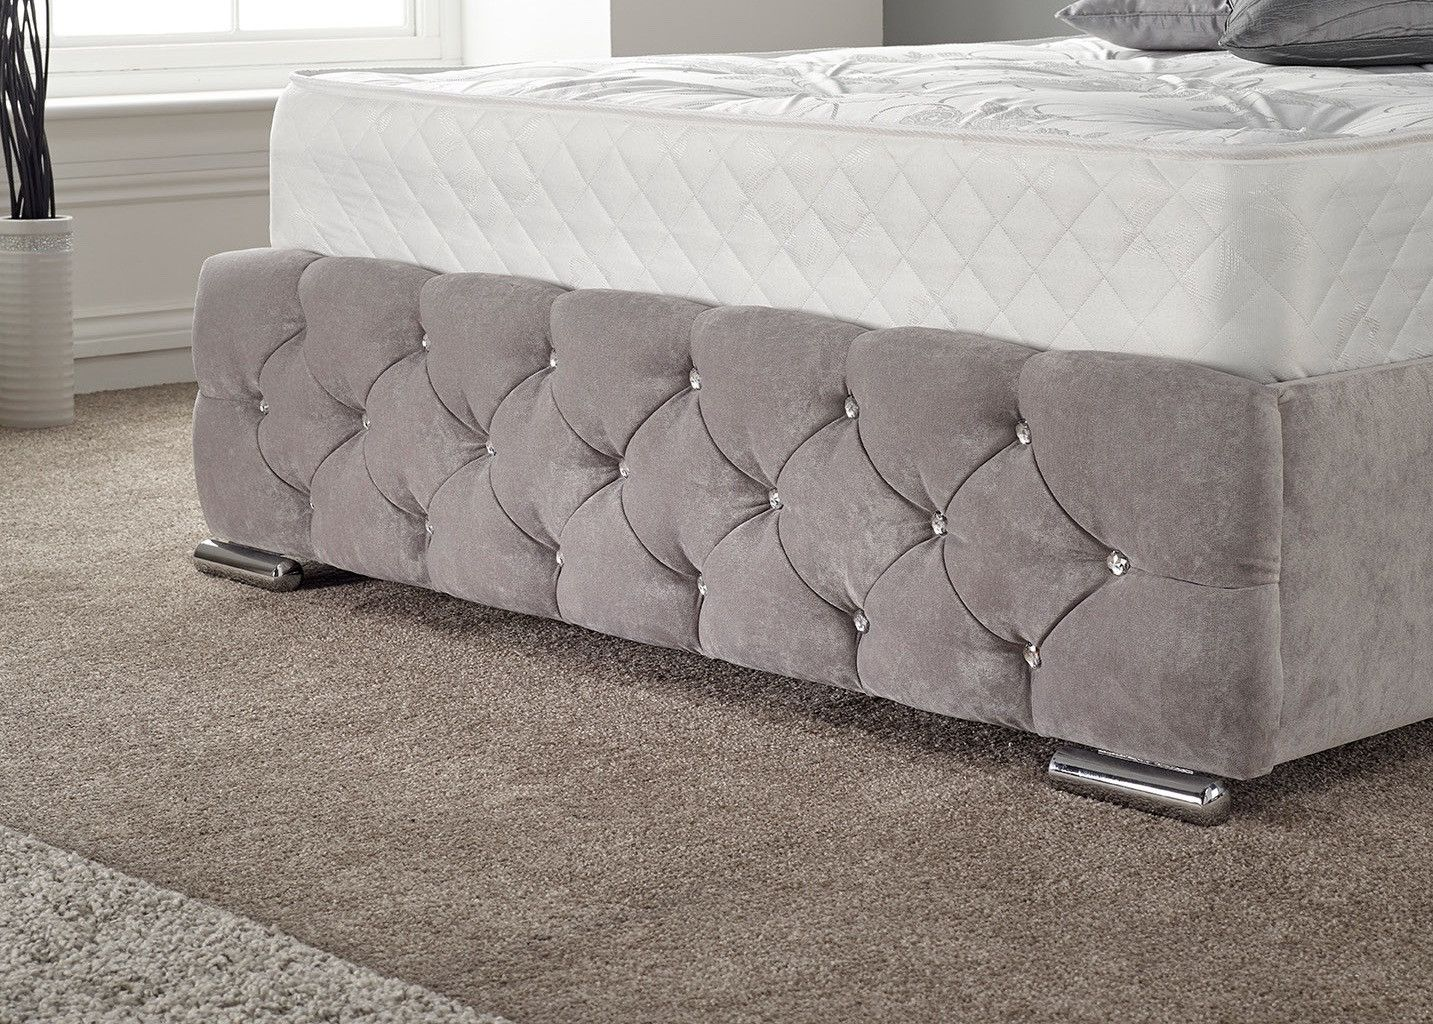 Marseille Bedroom Furniture Marseille Upholstered Bed End Naples Seal Grey Babateen Childrens